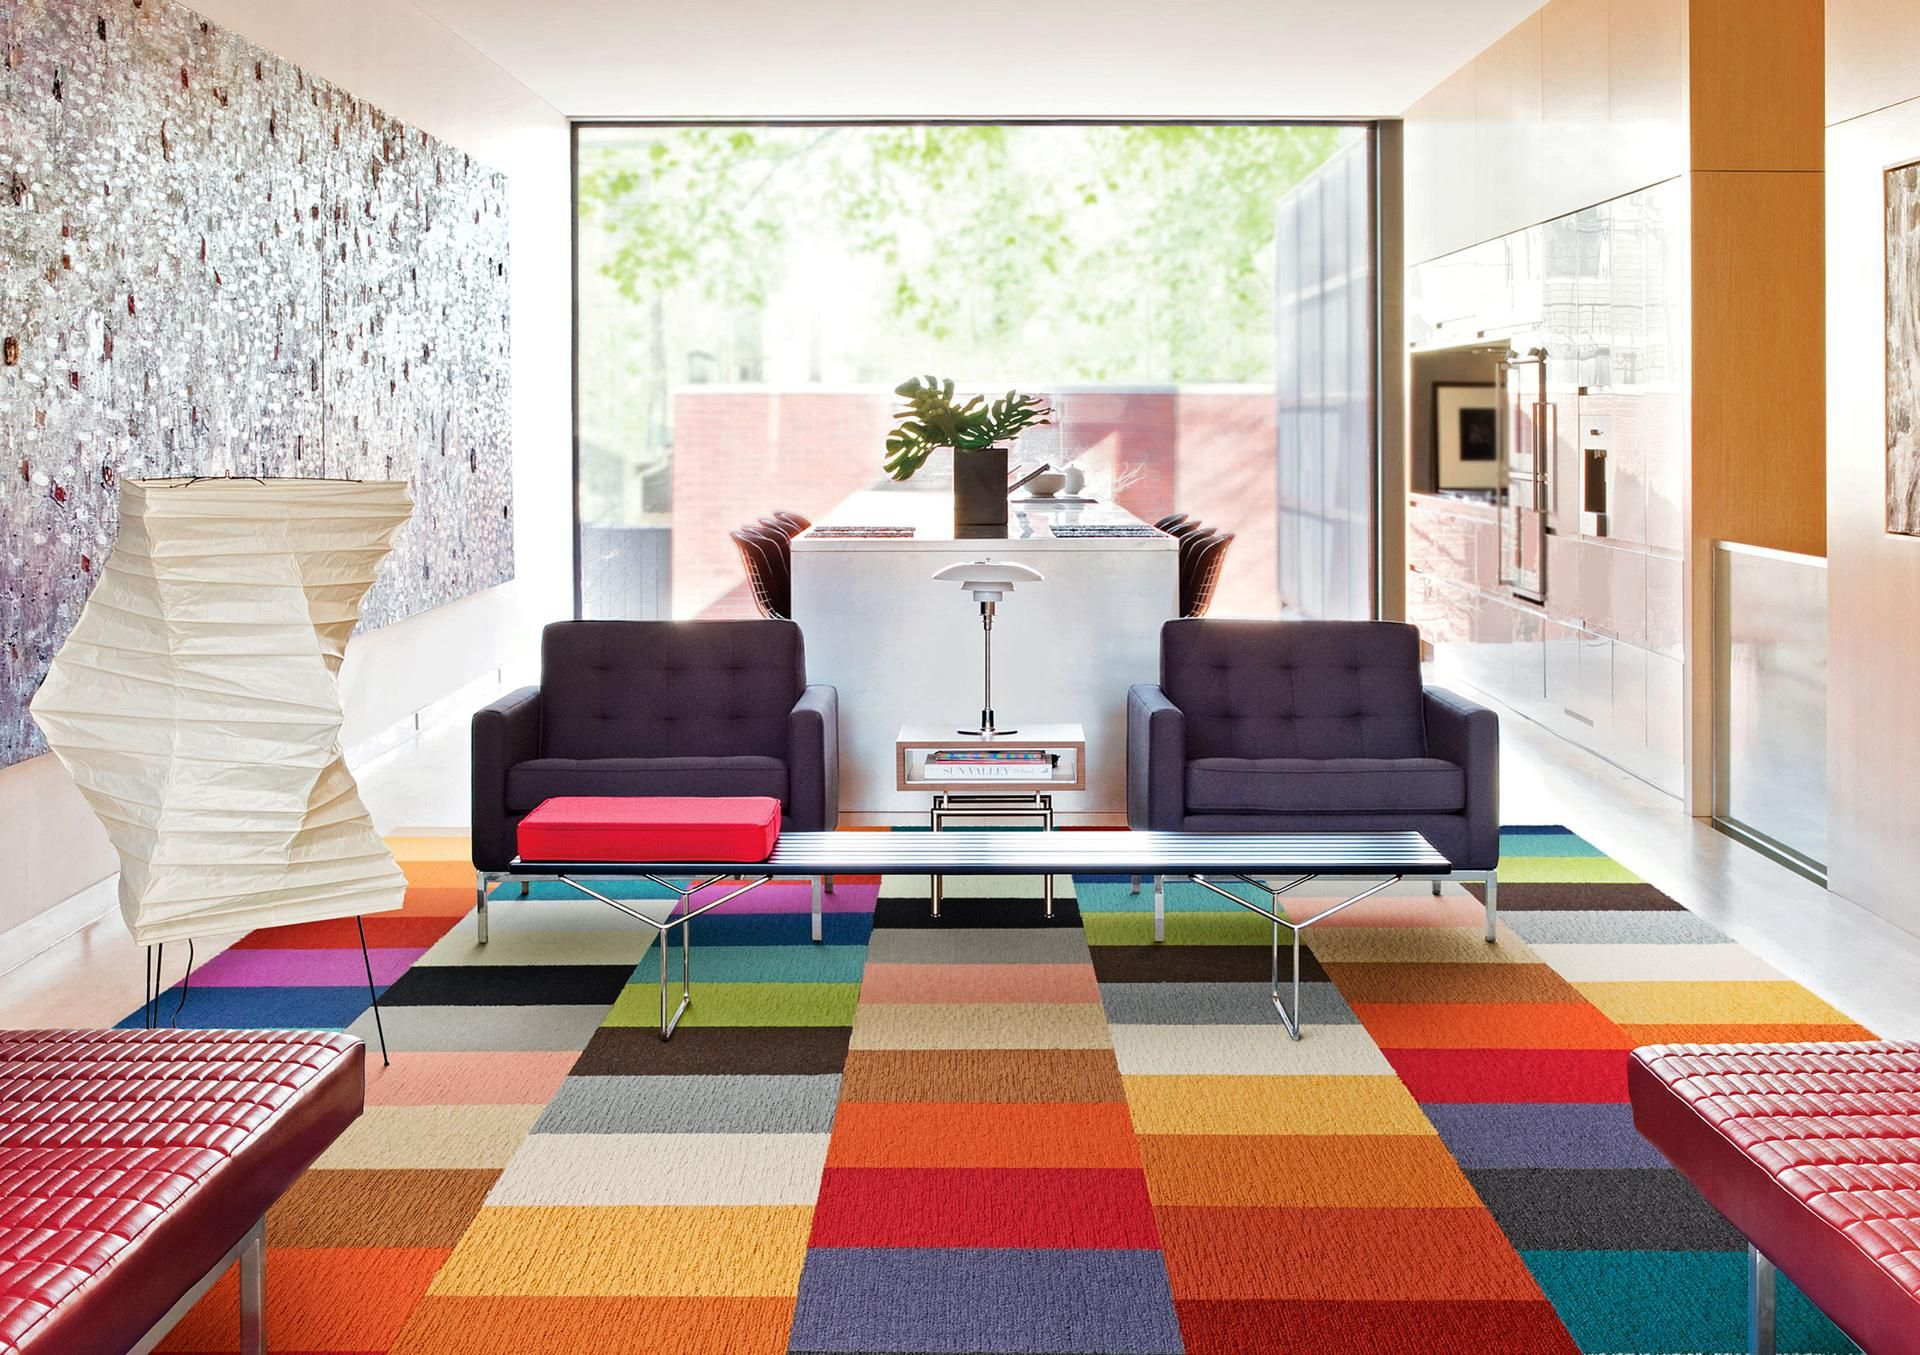 flor carpet tiles design ideas - Penelusuran Google | FLOOR ...